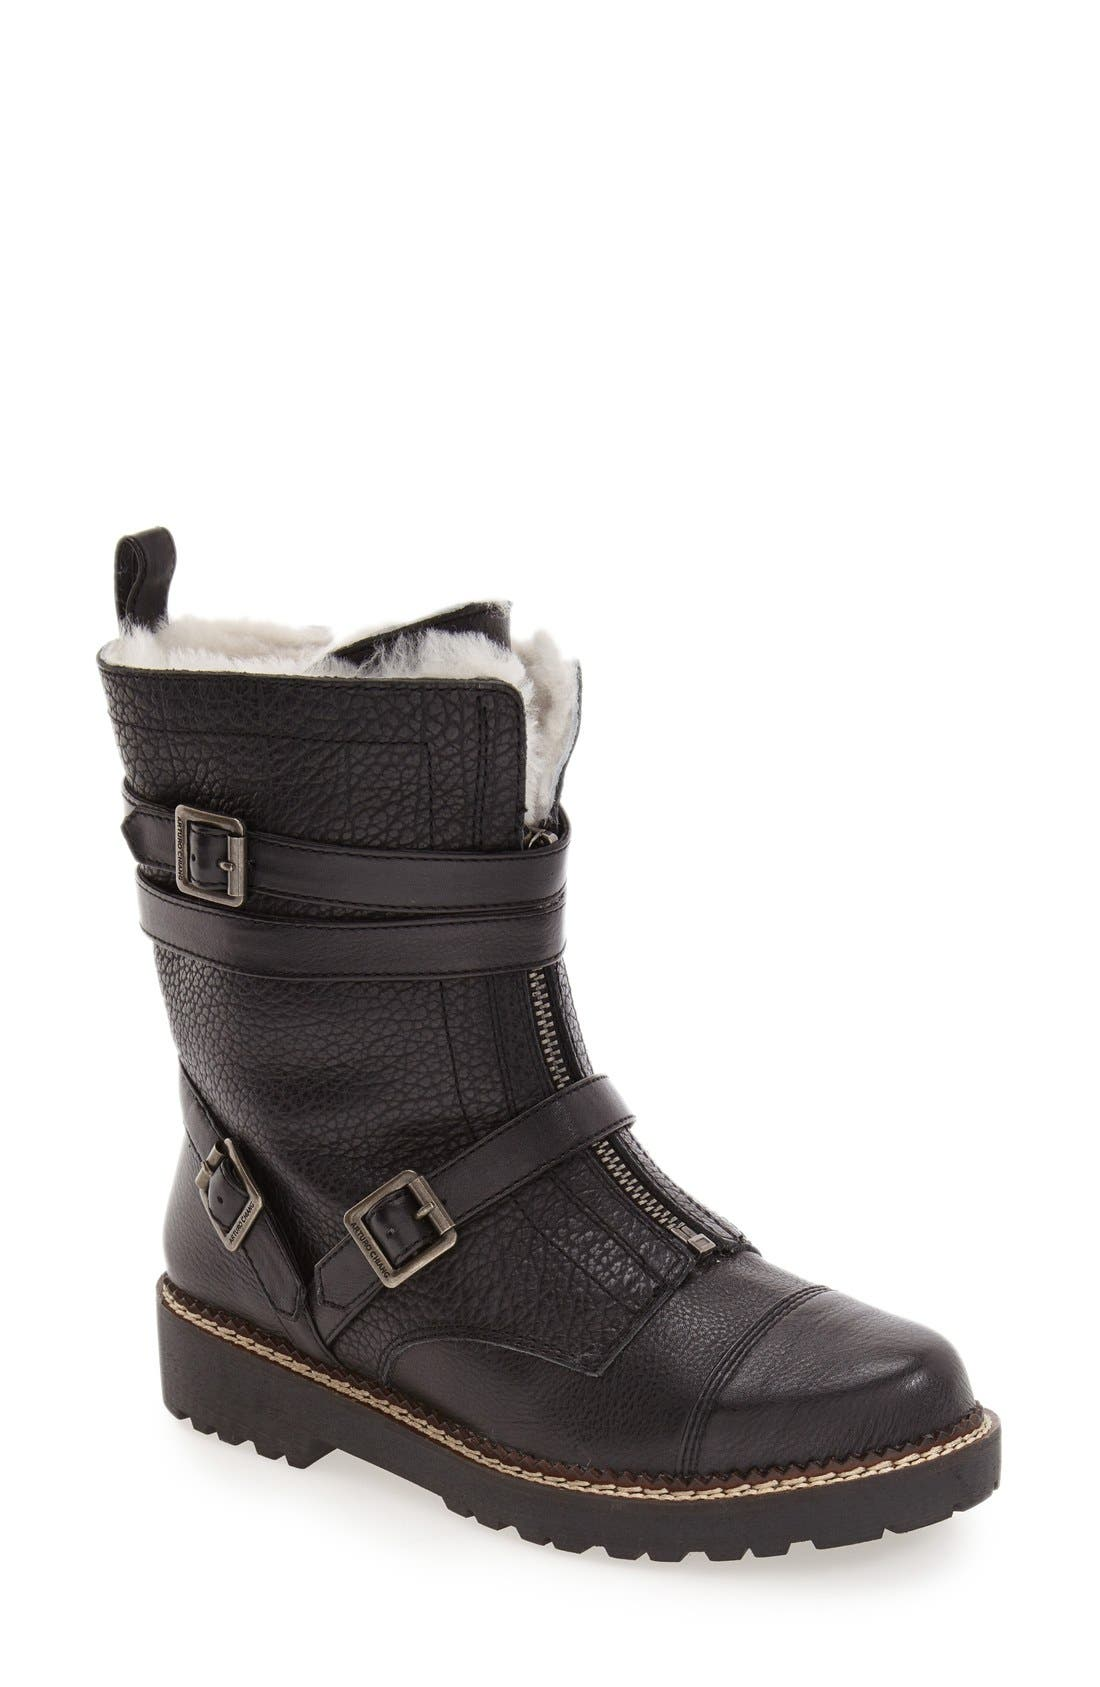 Arturo Chiang 'Pelli' Genuine Shearling Lined Boot (Women)